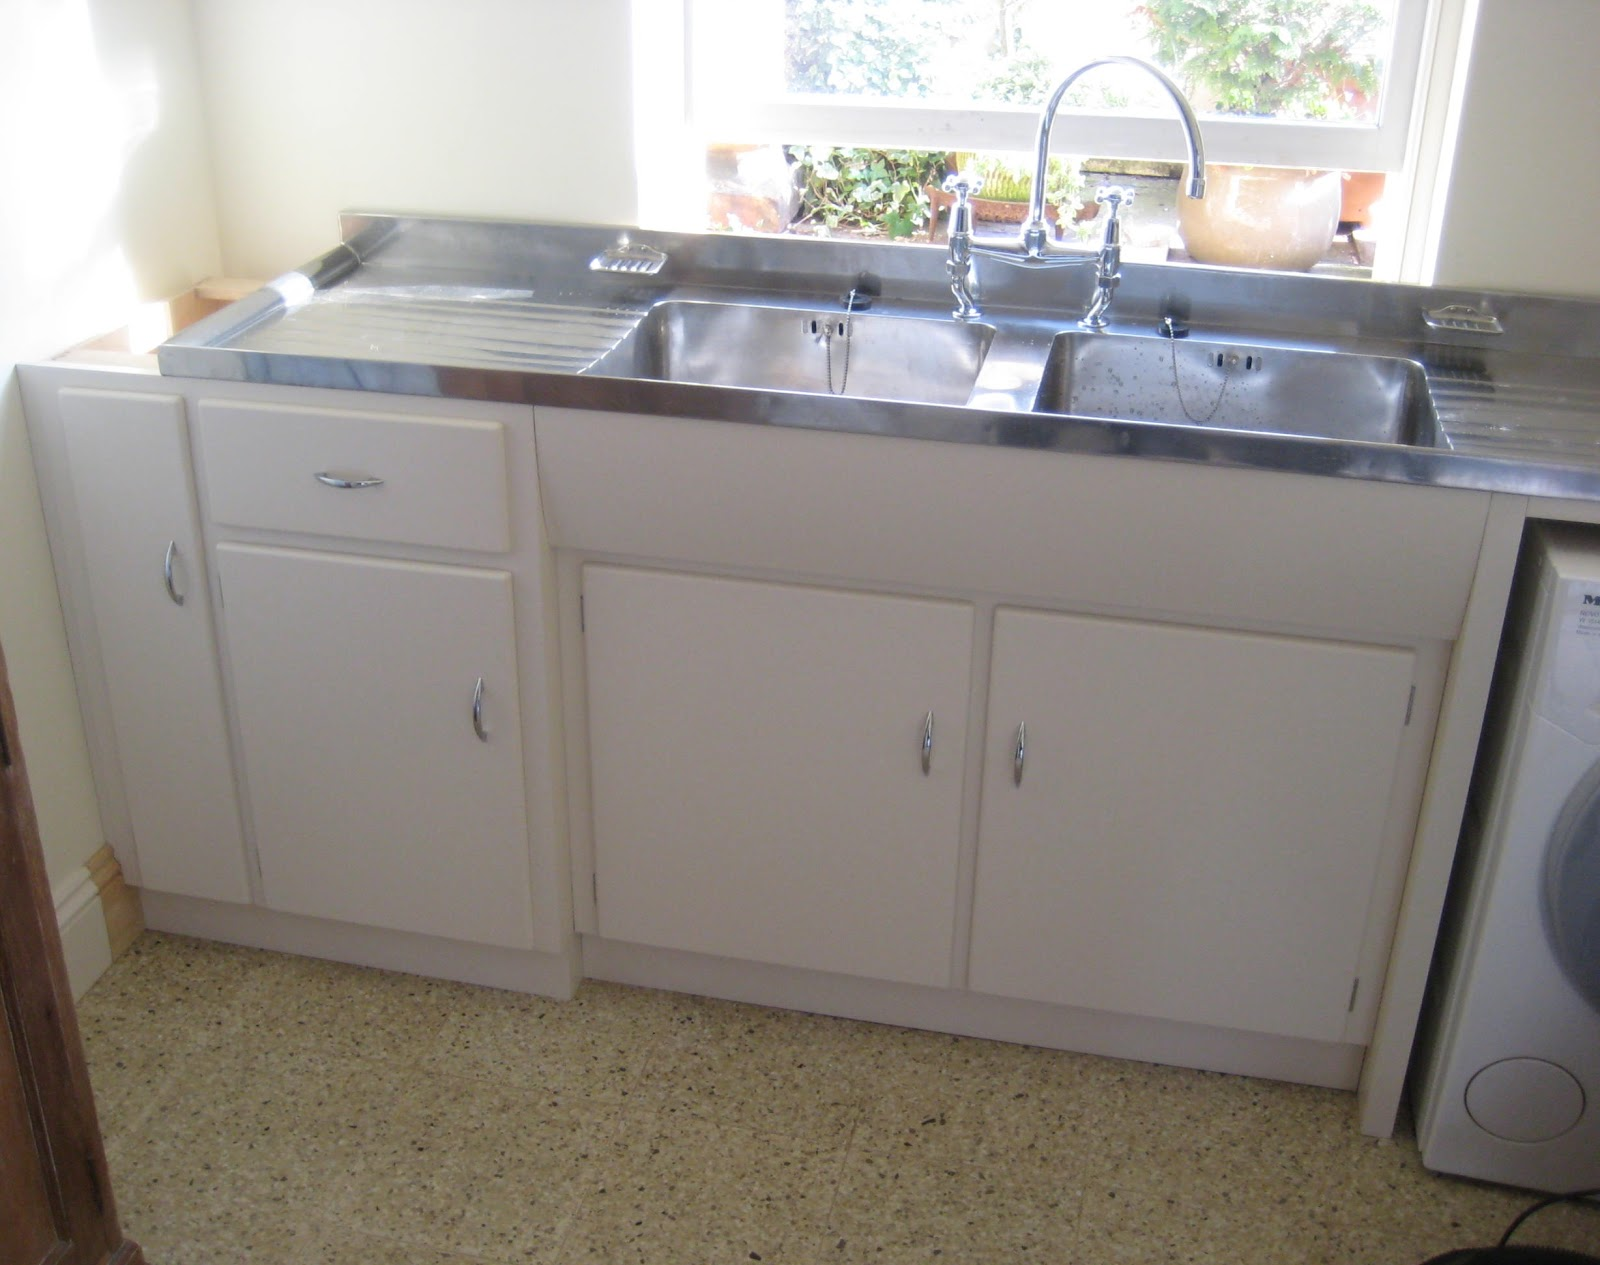 joe replaces a vintage porcelain drainboard kitchen sink with a new elkay stainless steel on kitchen sink id=46987